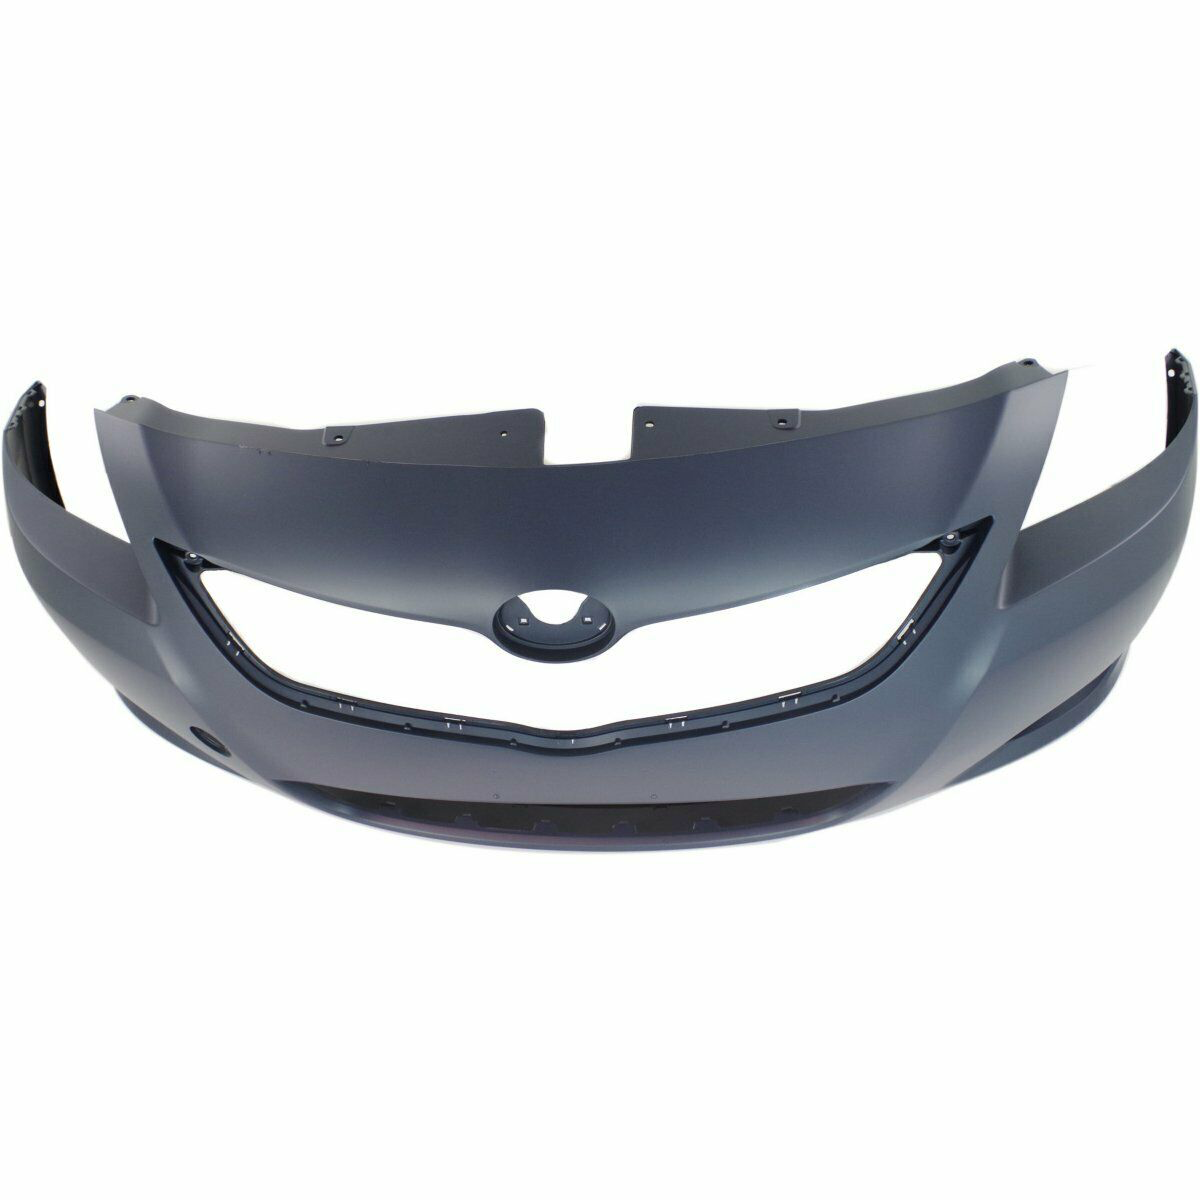 2007-2009 Toyota Yaris Sedan Front Bumper Painted to Match